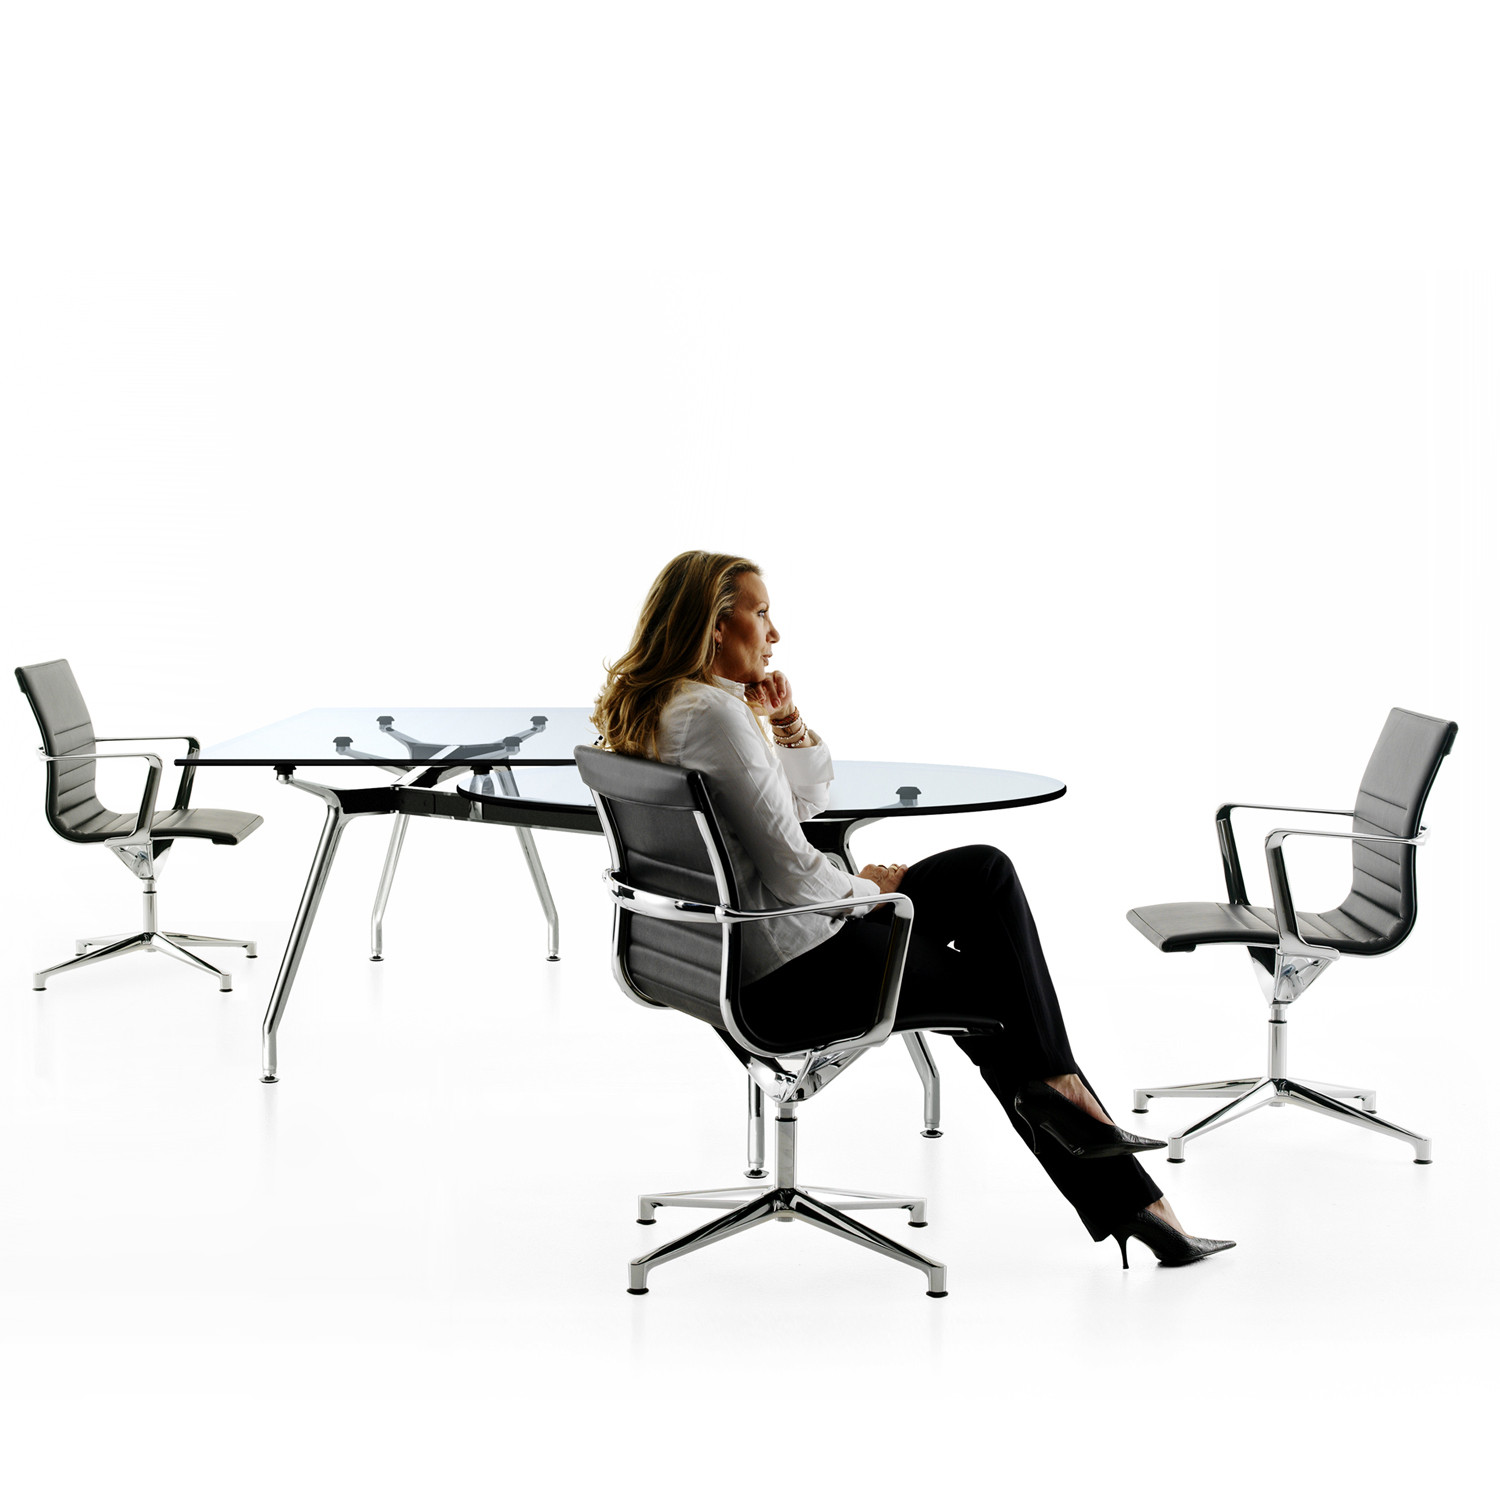 Unitable Executive Modular Desk System